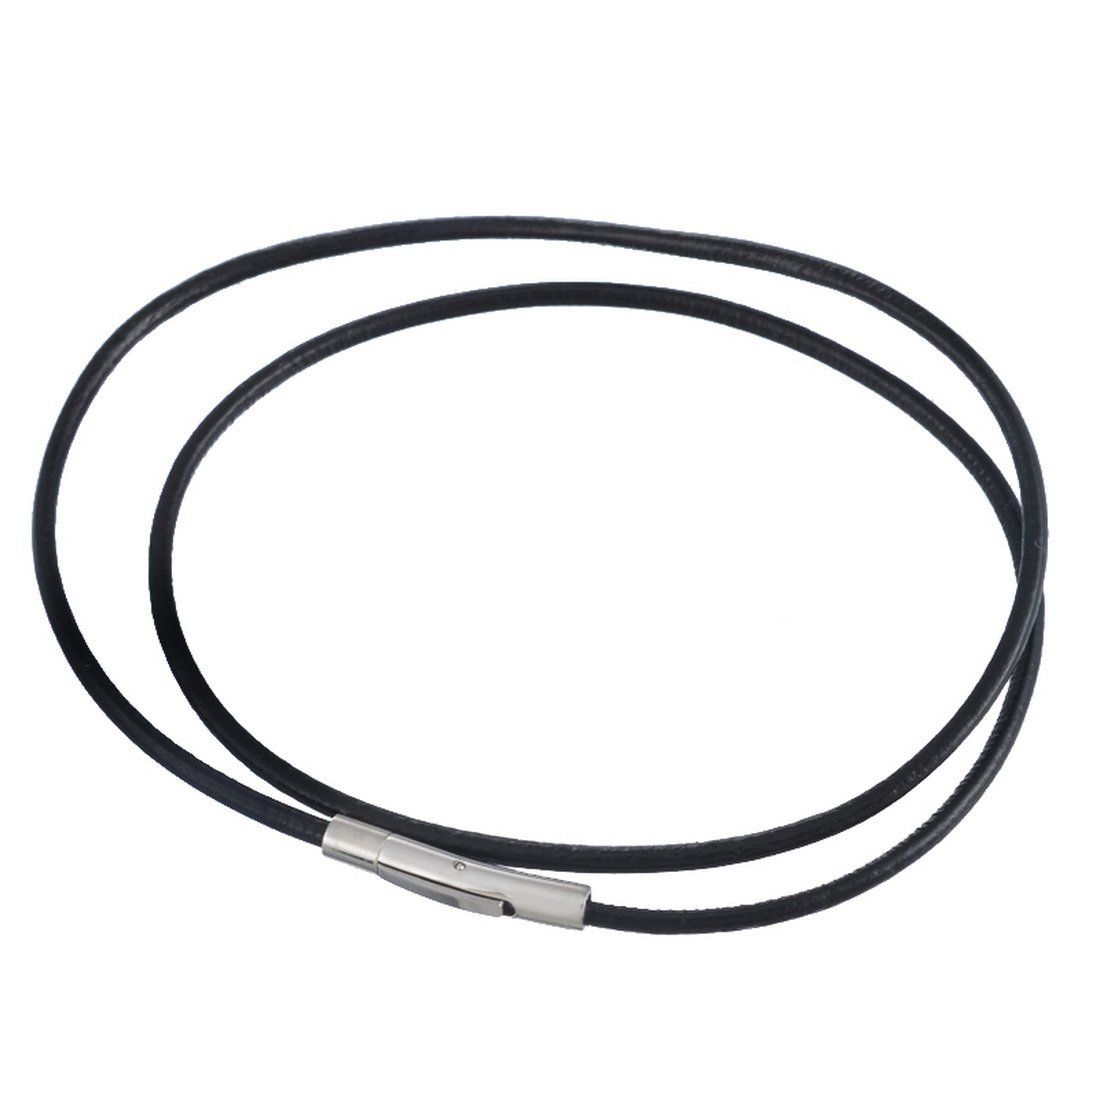 Souarts Black 3mm Leather Cord Chain Necklace With